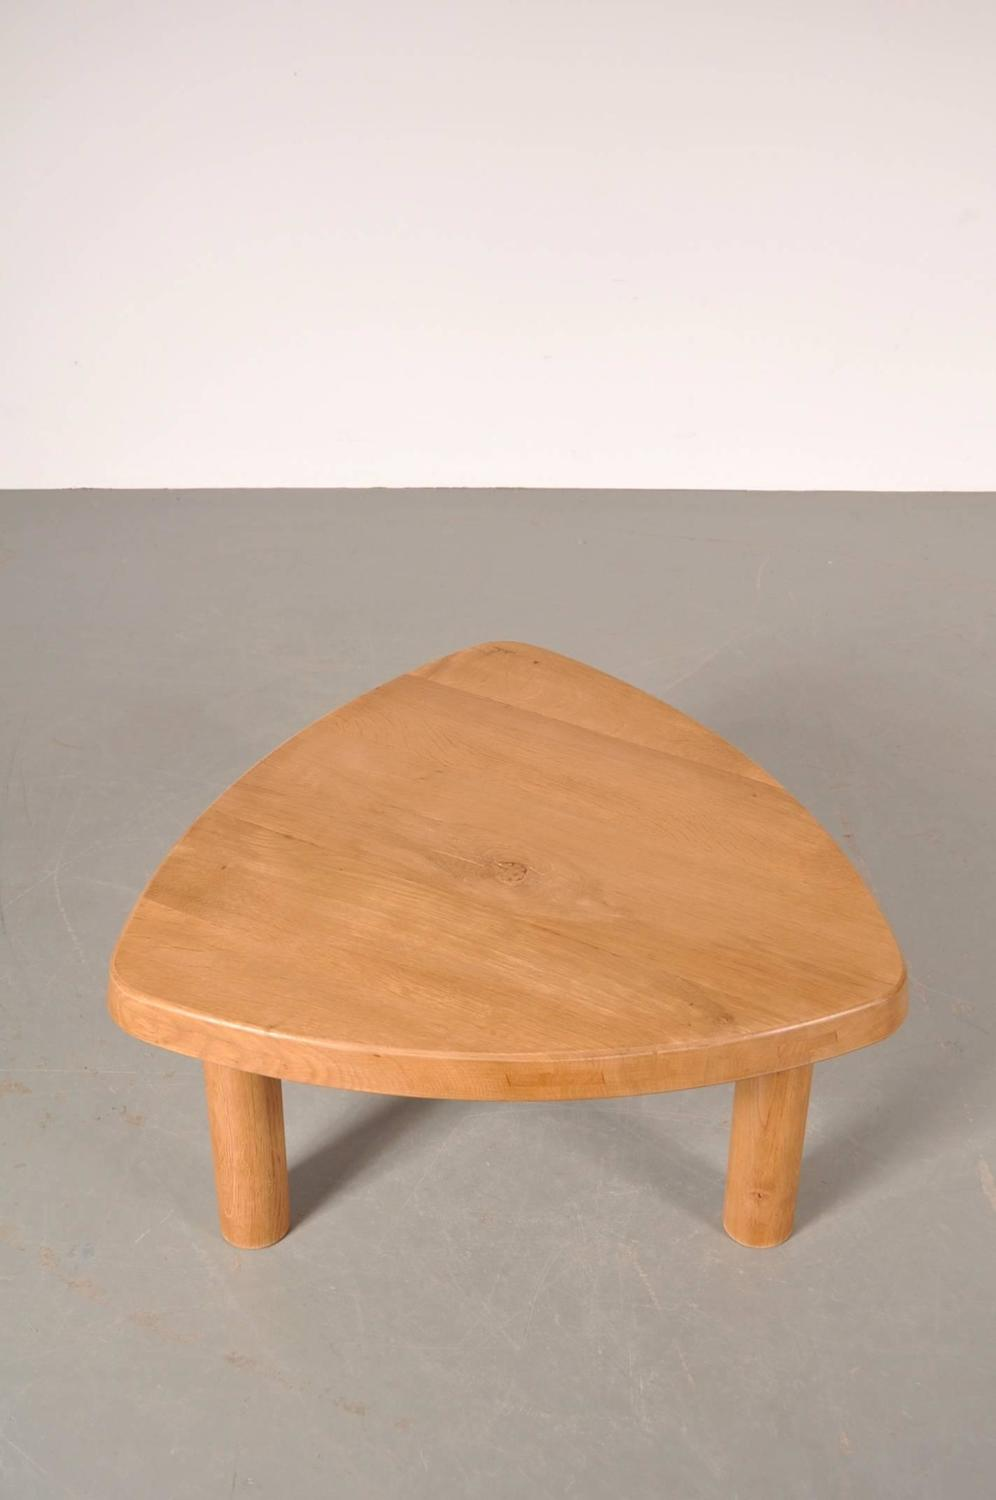 coffee table by charlotte perriand france circa 1950 for sale at 1stdibs. Black Bedroom Furniture Sets. Home Design Ideas